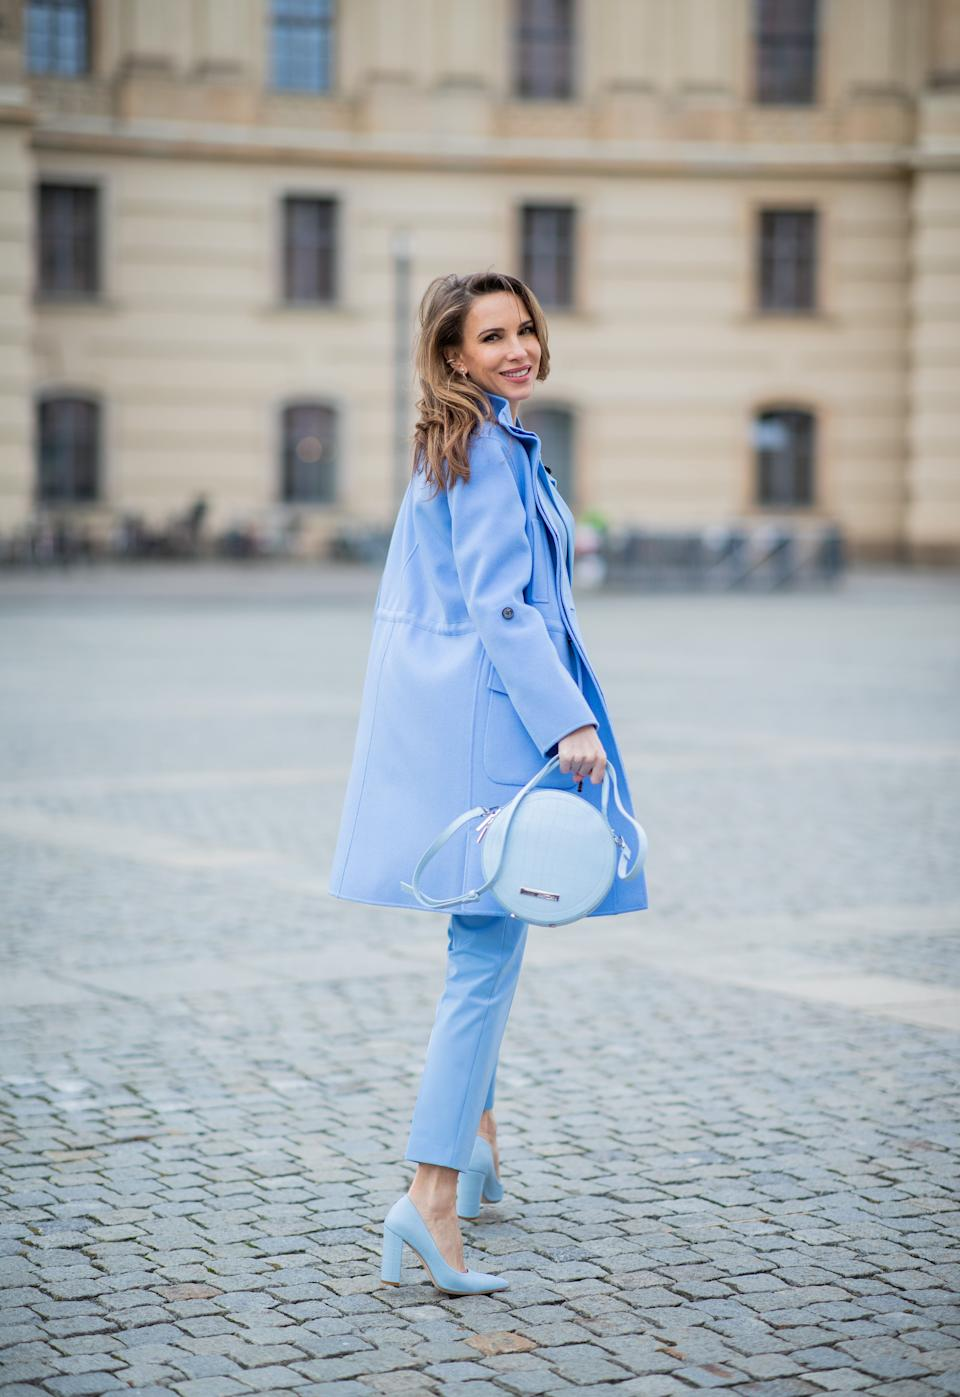 BERLIN, GERMANY - JANUARY 14: Alexandra Lapp is seen wearing total look Marc Cain: blue blazer, pants worn as a suit, round bag, blue shoes, wool coat during the Berlin Fashion Week Autumn/Winter 2020 on January 14, 2020 in Berlin, Germany. (Photo by Christian Vierig/Getty Images)